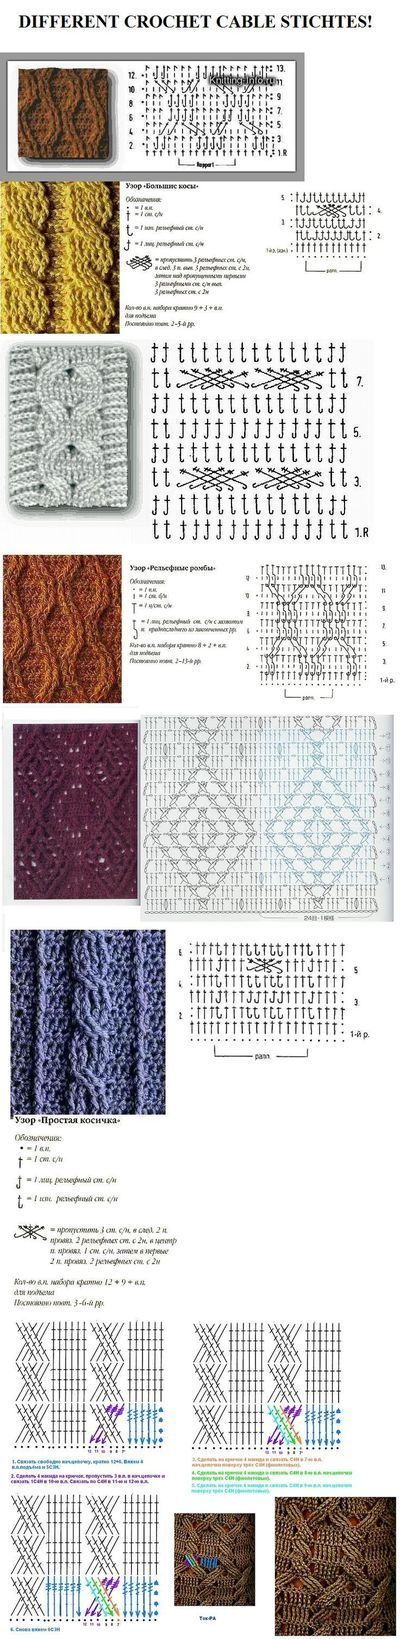 different crochet cable stitches